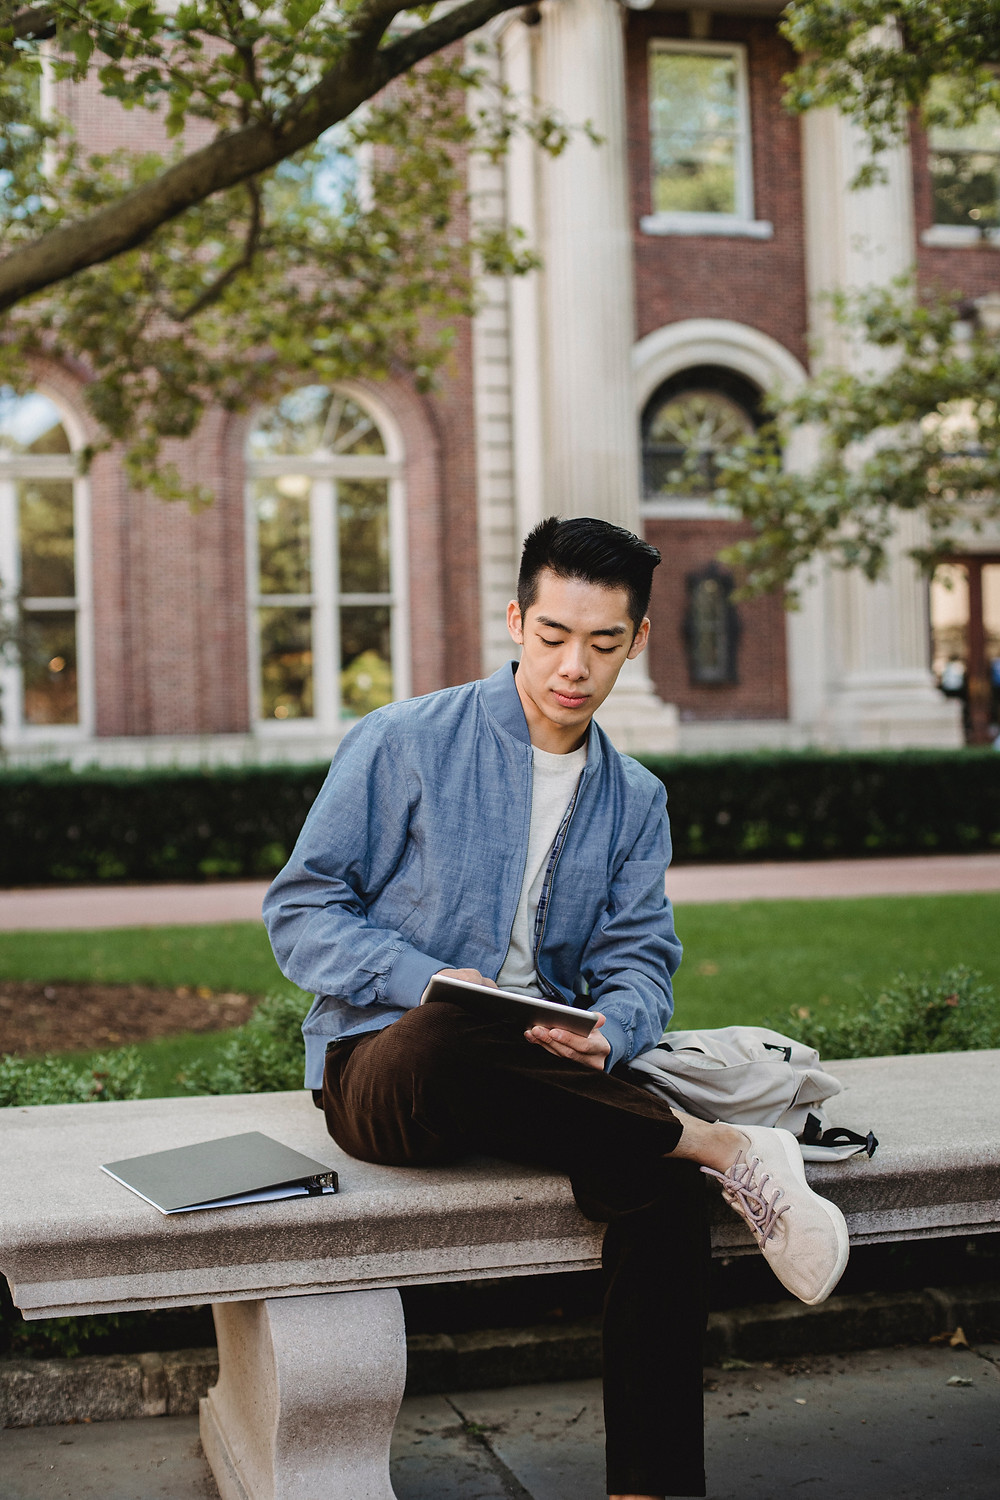 A person reads professional thought leadership on a tablet while sitting outdoors.